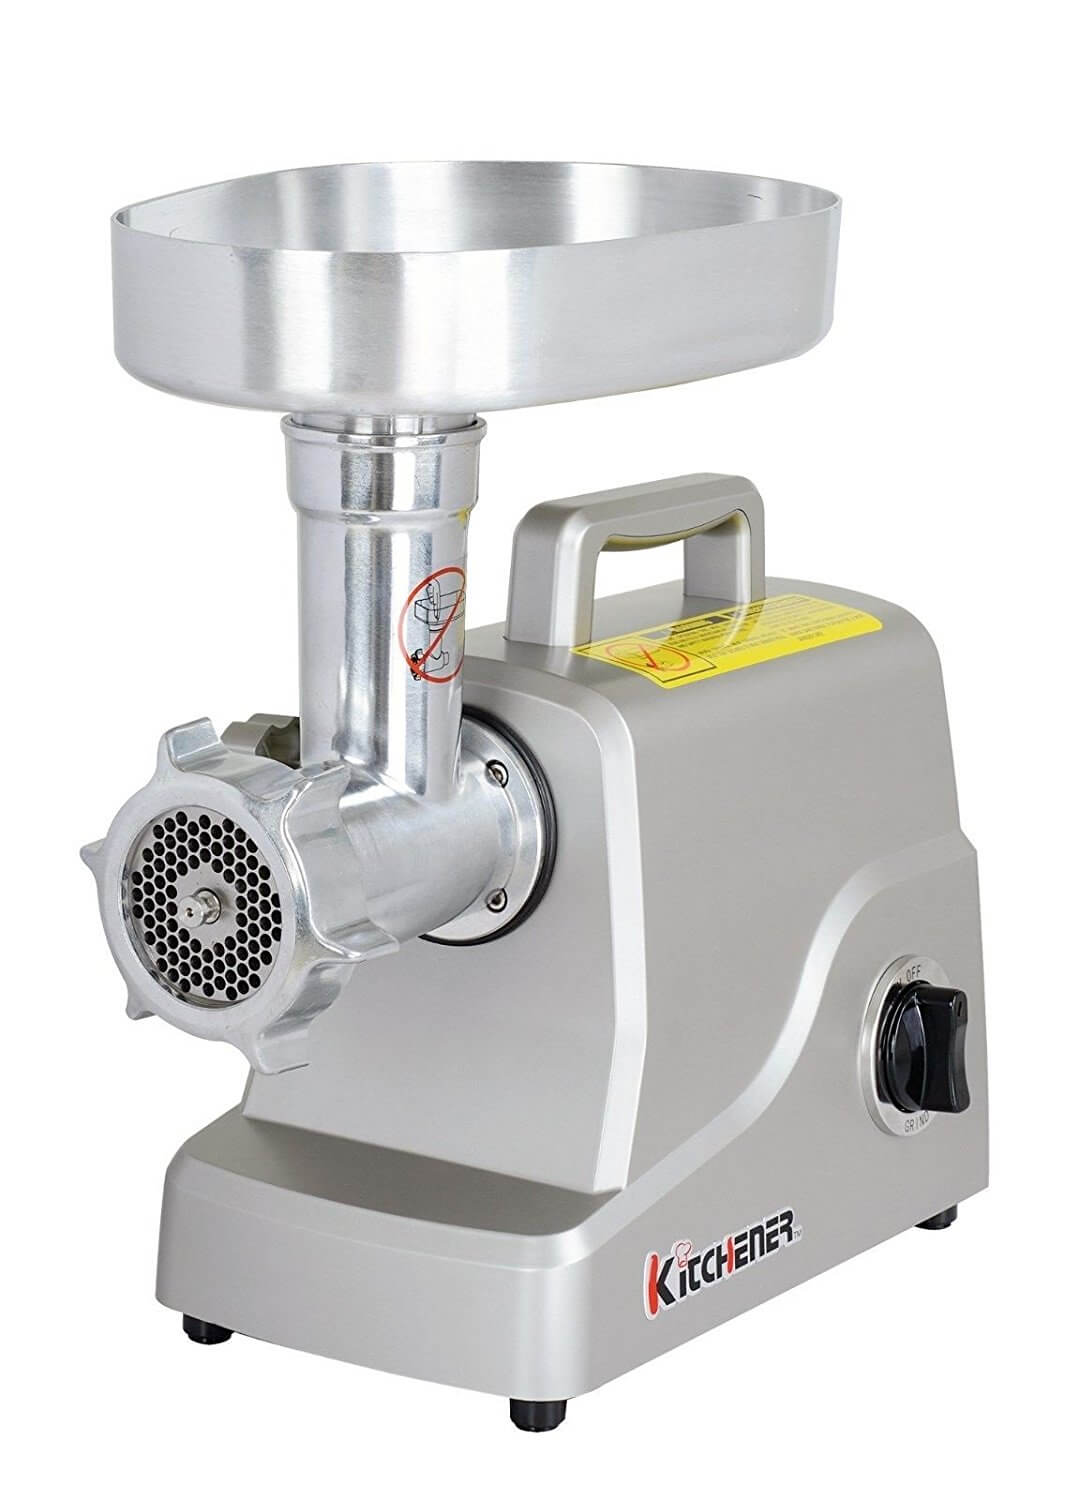 electric grinder kitchen high table heavy duty meat a must have in your